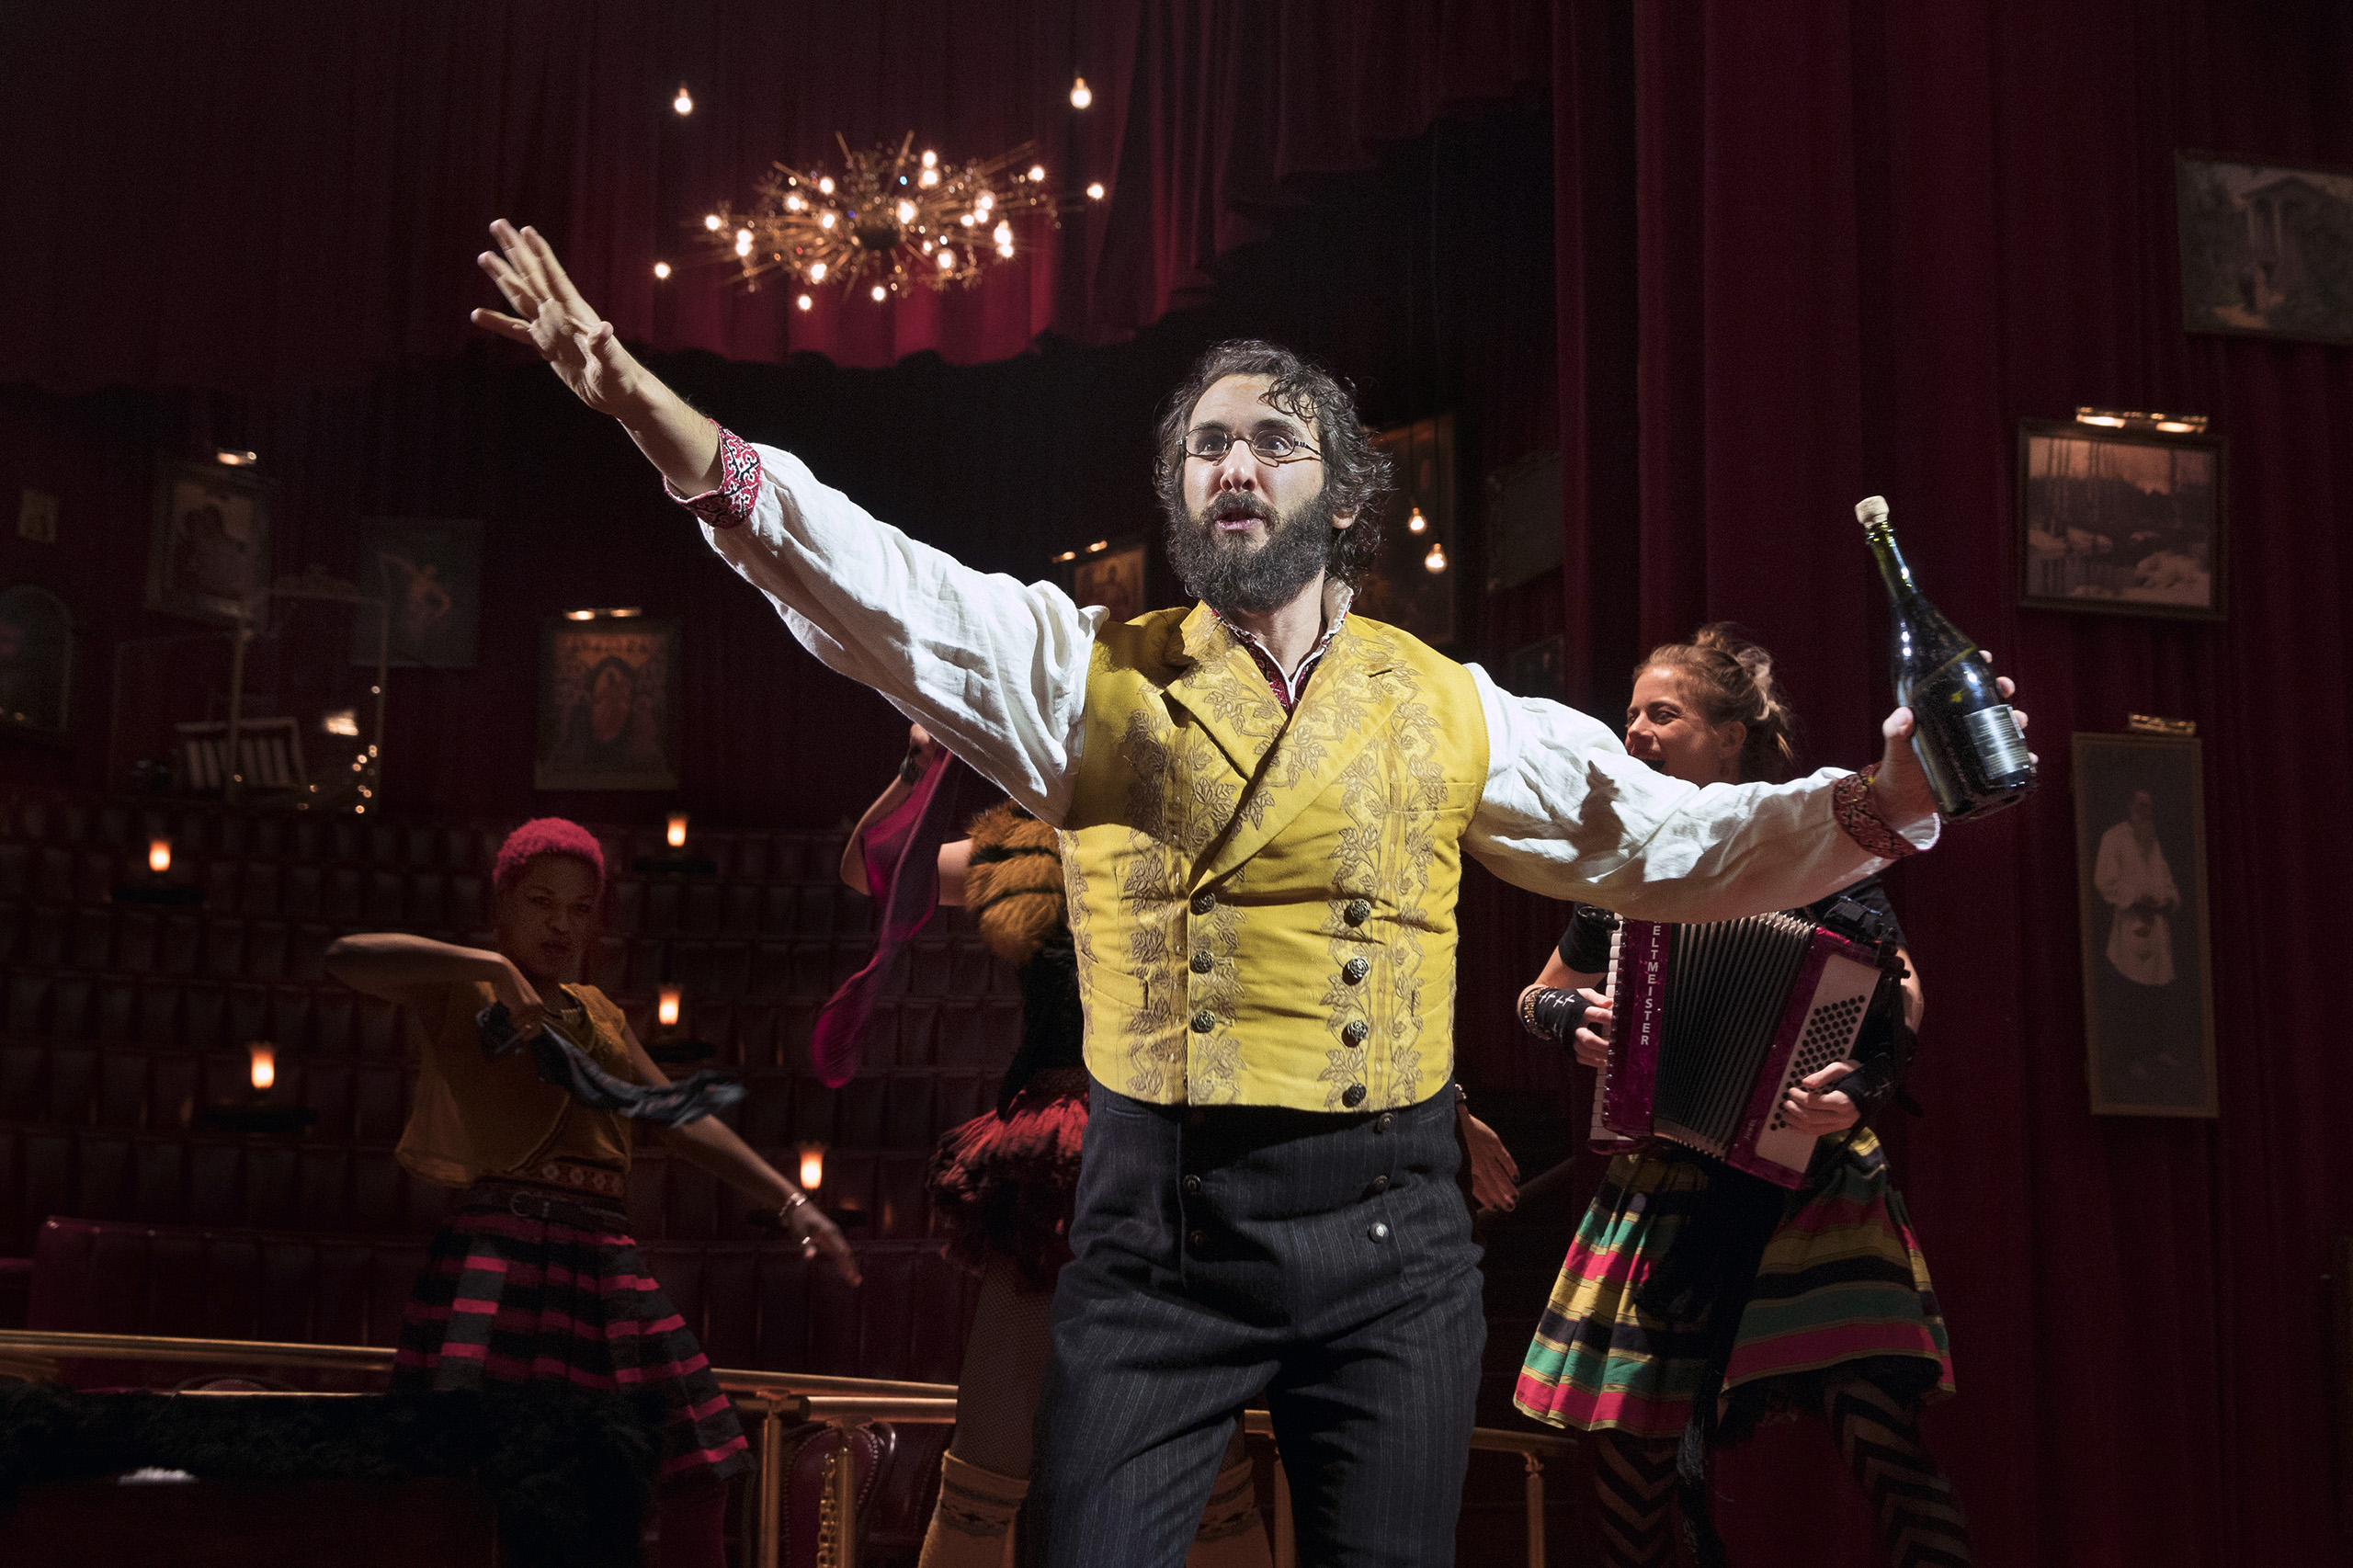 Josh Groban in the musical  Natasha, Pierre and The Great Comet of 1812  at the Imperial Theater in New York, Nov. 4, 2016. Dave Malloy's pop opera, adapted from a slice of Tolstoy's  War and Peace,  was born four years ago in the shoe box of Ars Nova, one of the most adventurous Off Broadway companies, before moving into a specially built cabaret-style space in the meatpacking district. (Sara Krulwich/The New York Times)